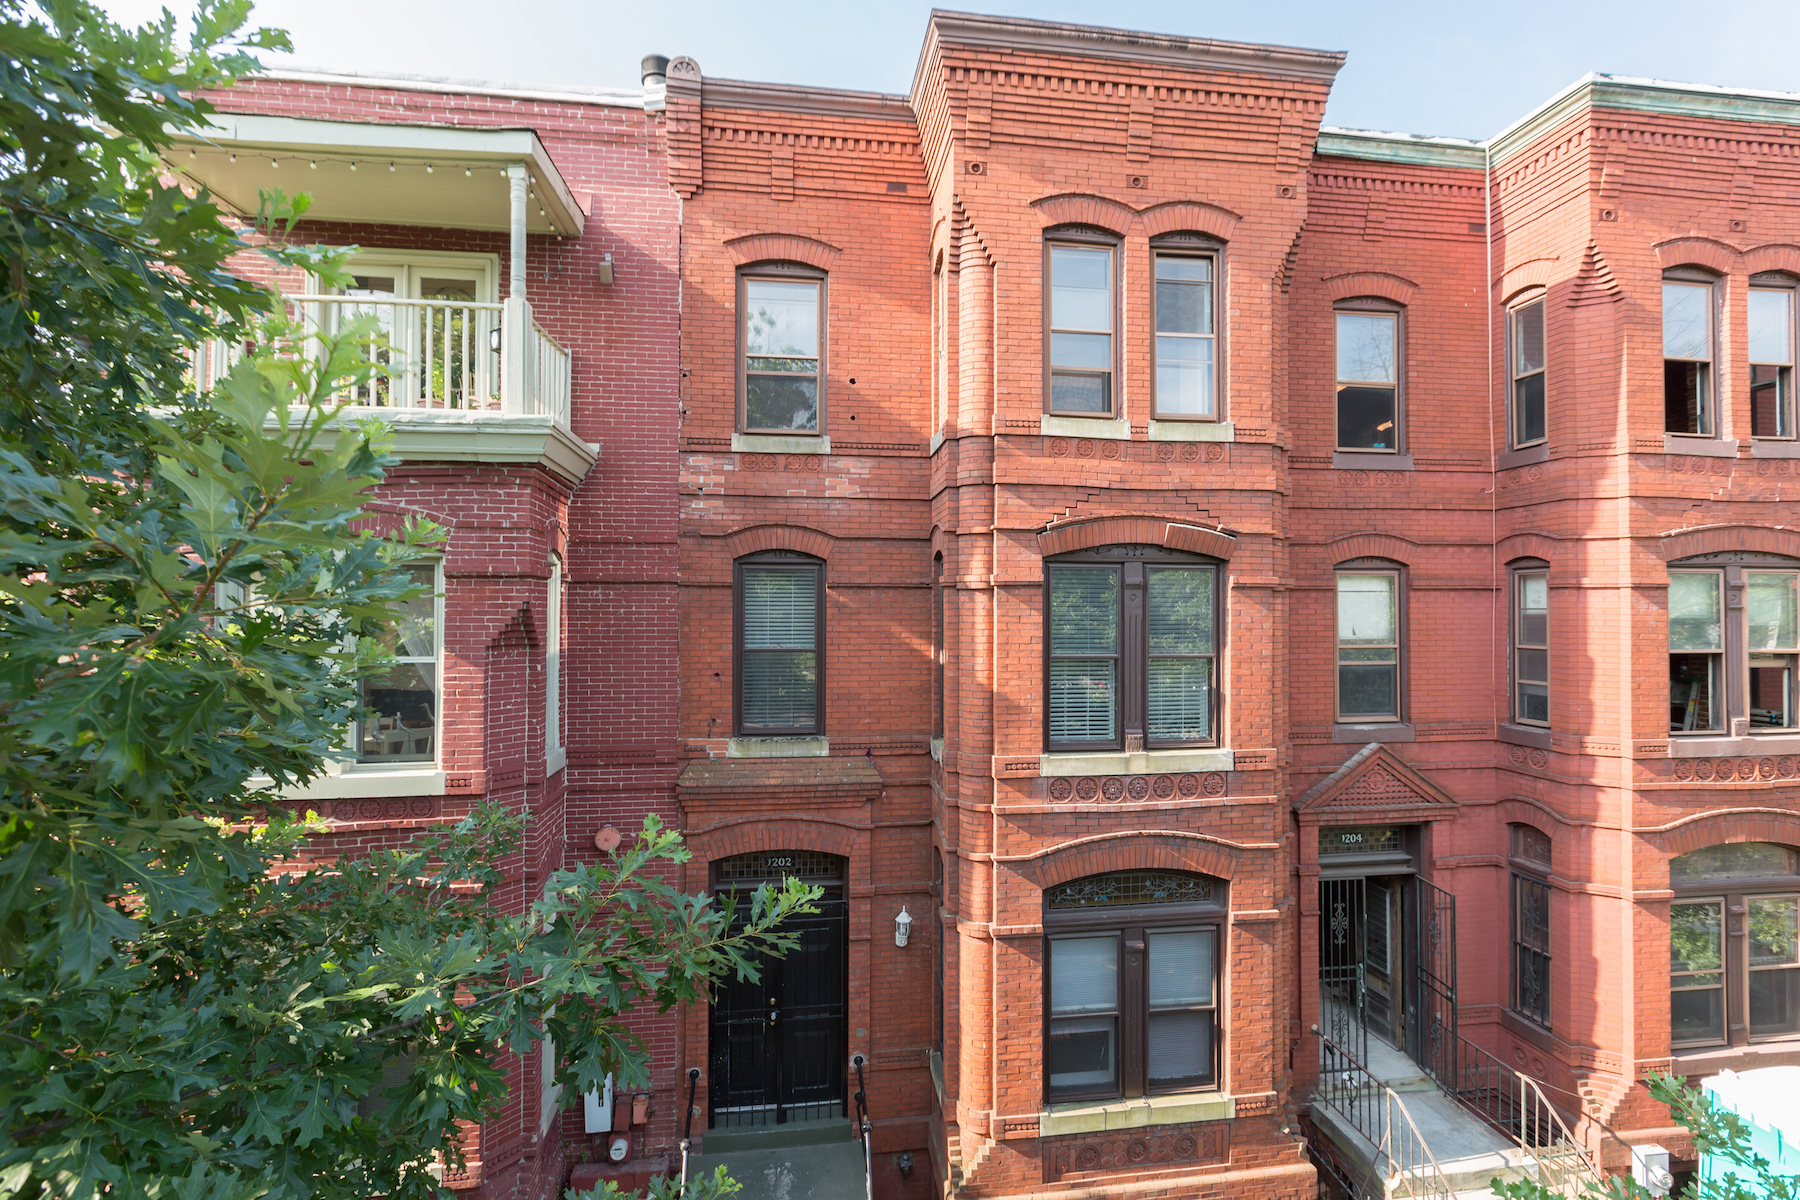 Multi-Family Home for Sale at 1202 P Street Nw, Washington Washington, District Of Columbia, 20005 United States